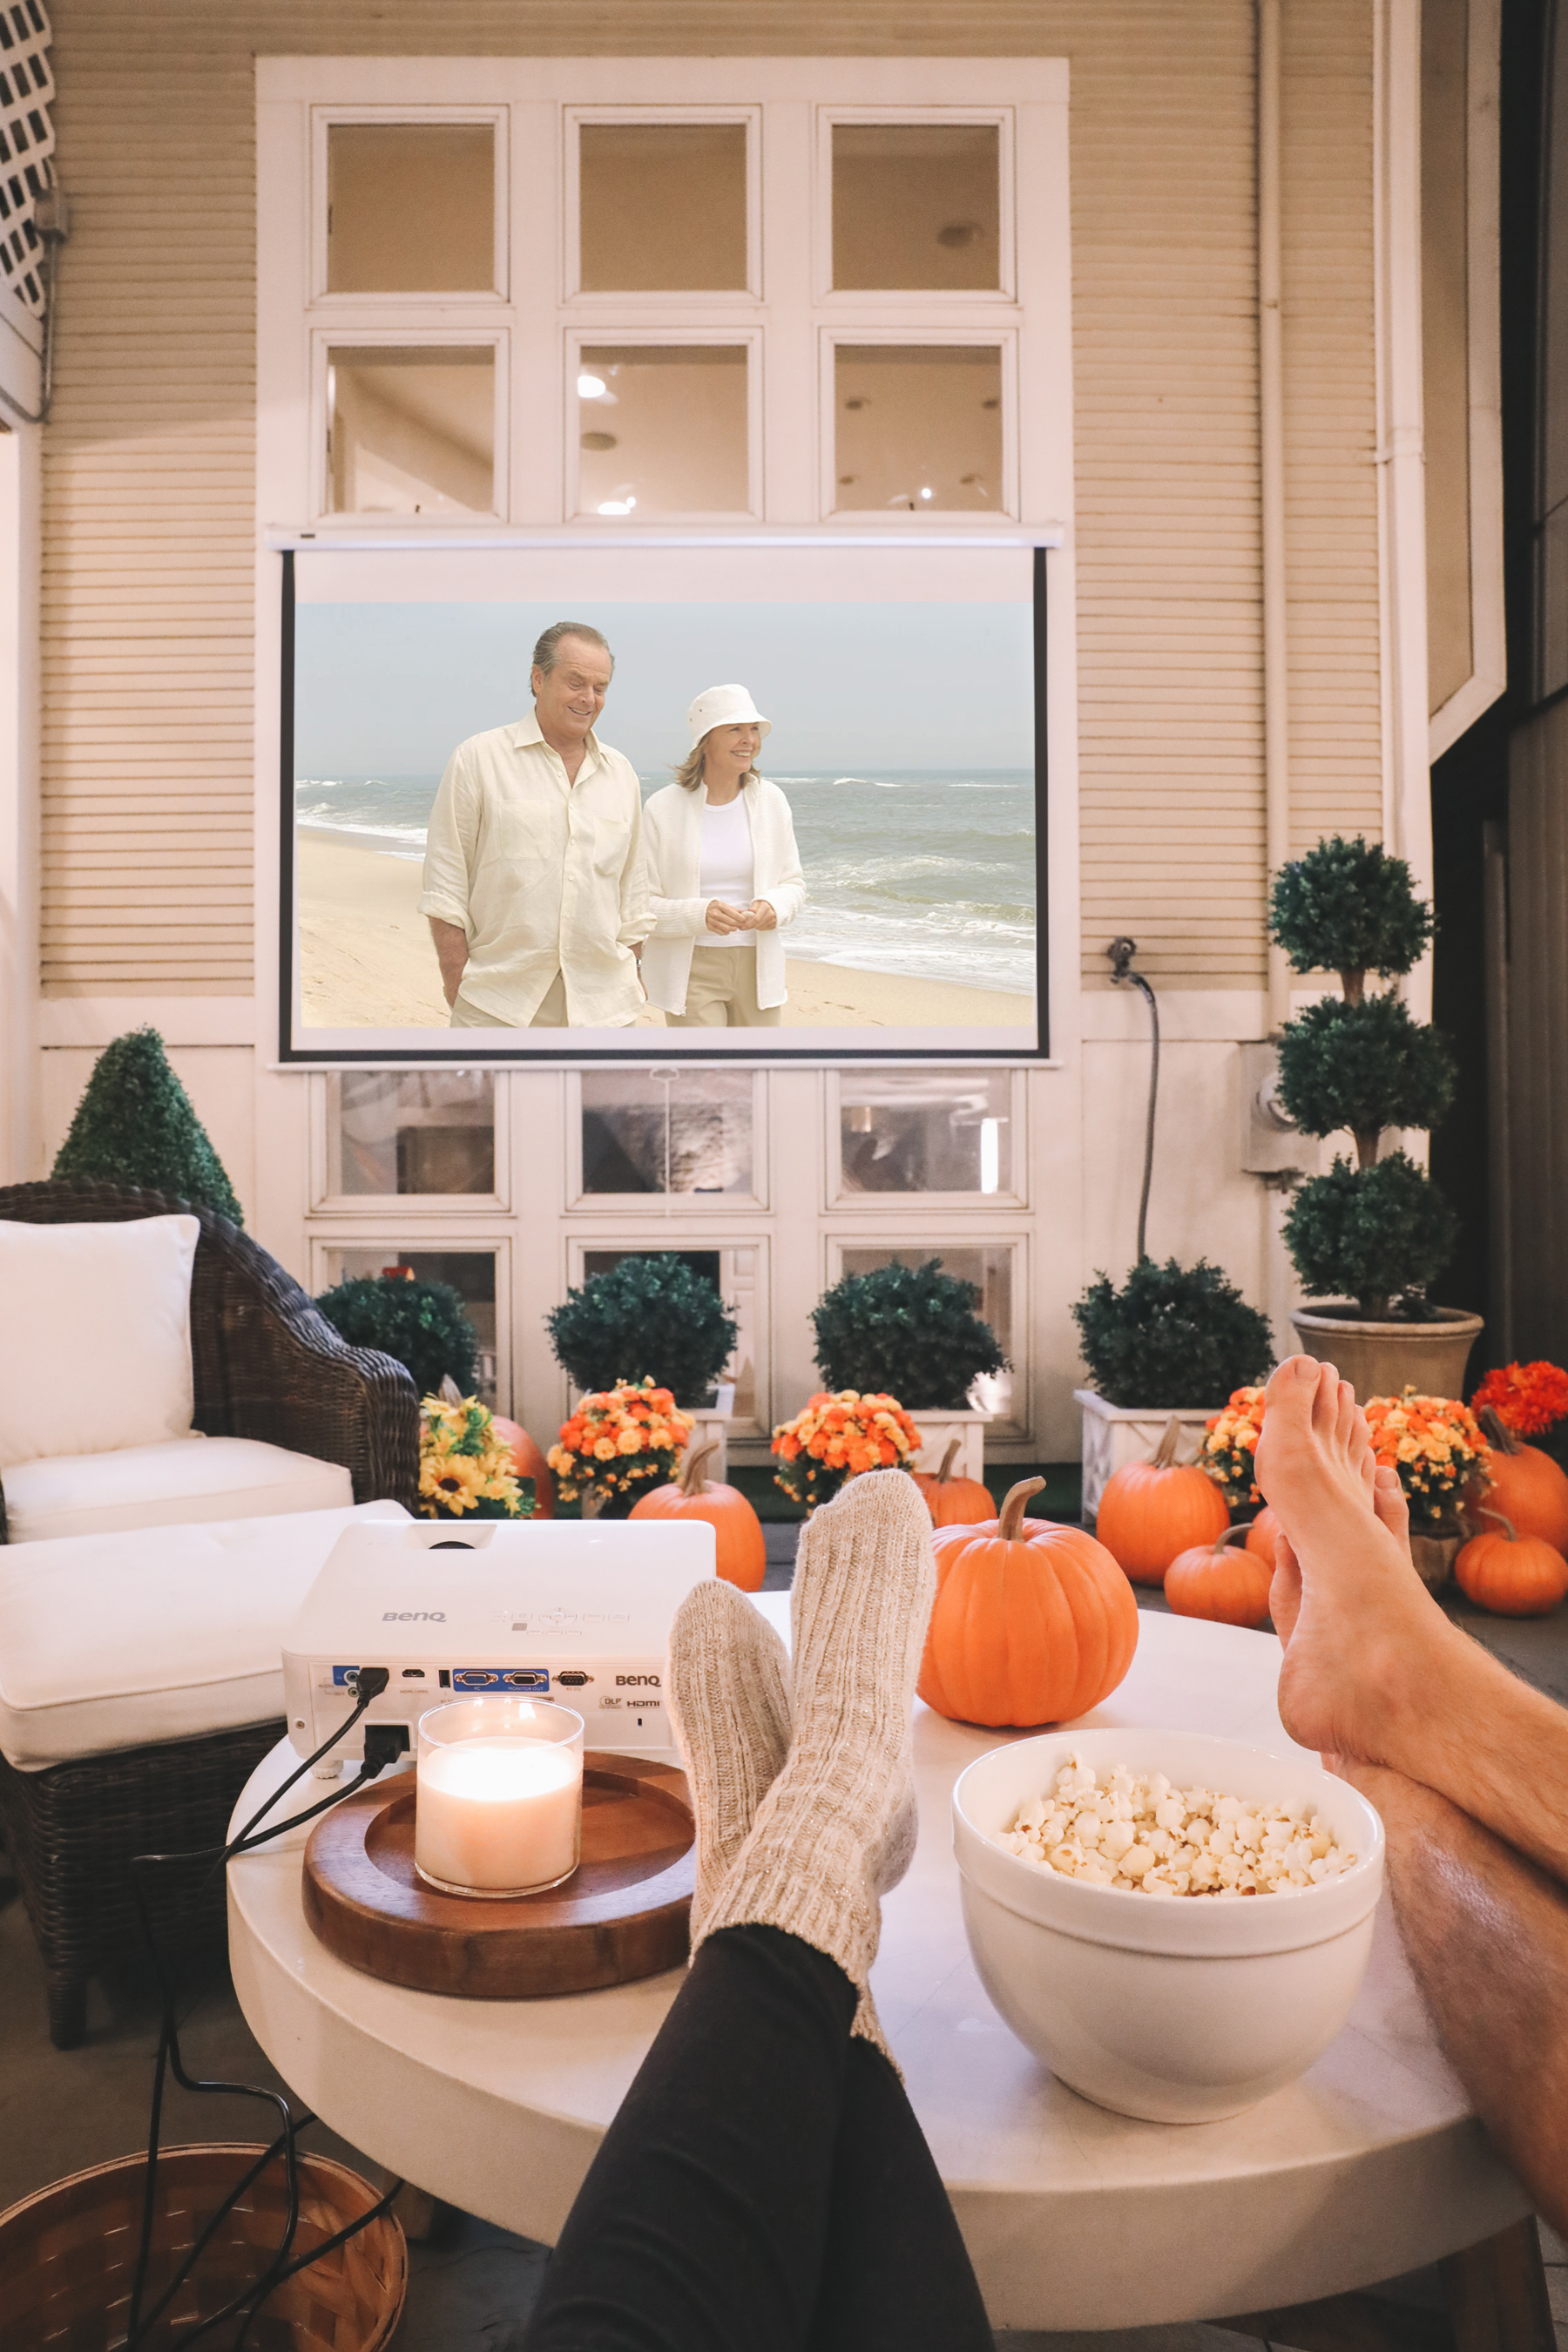 How to Make an Outdoor Movie Theater